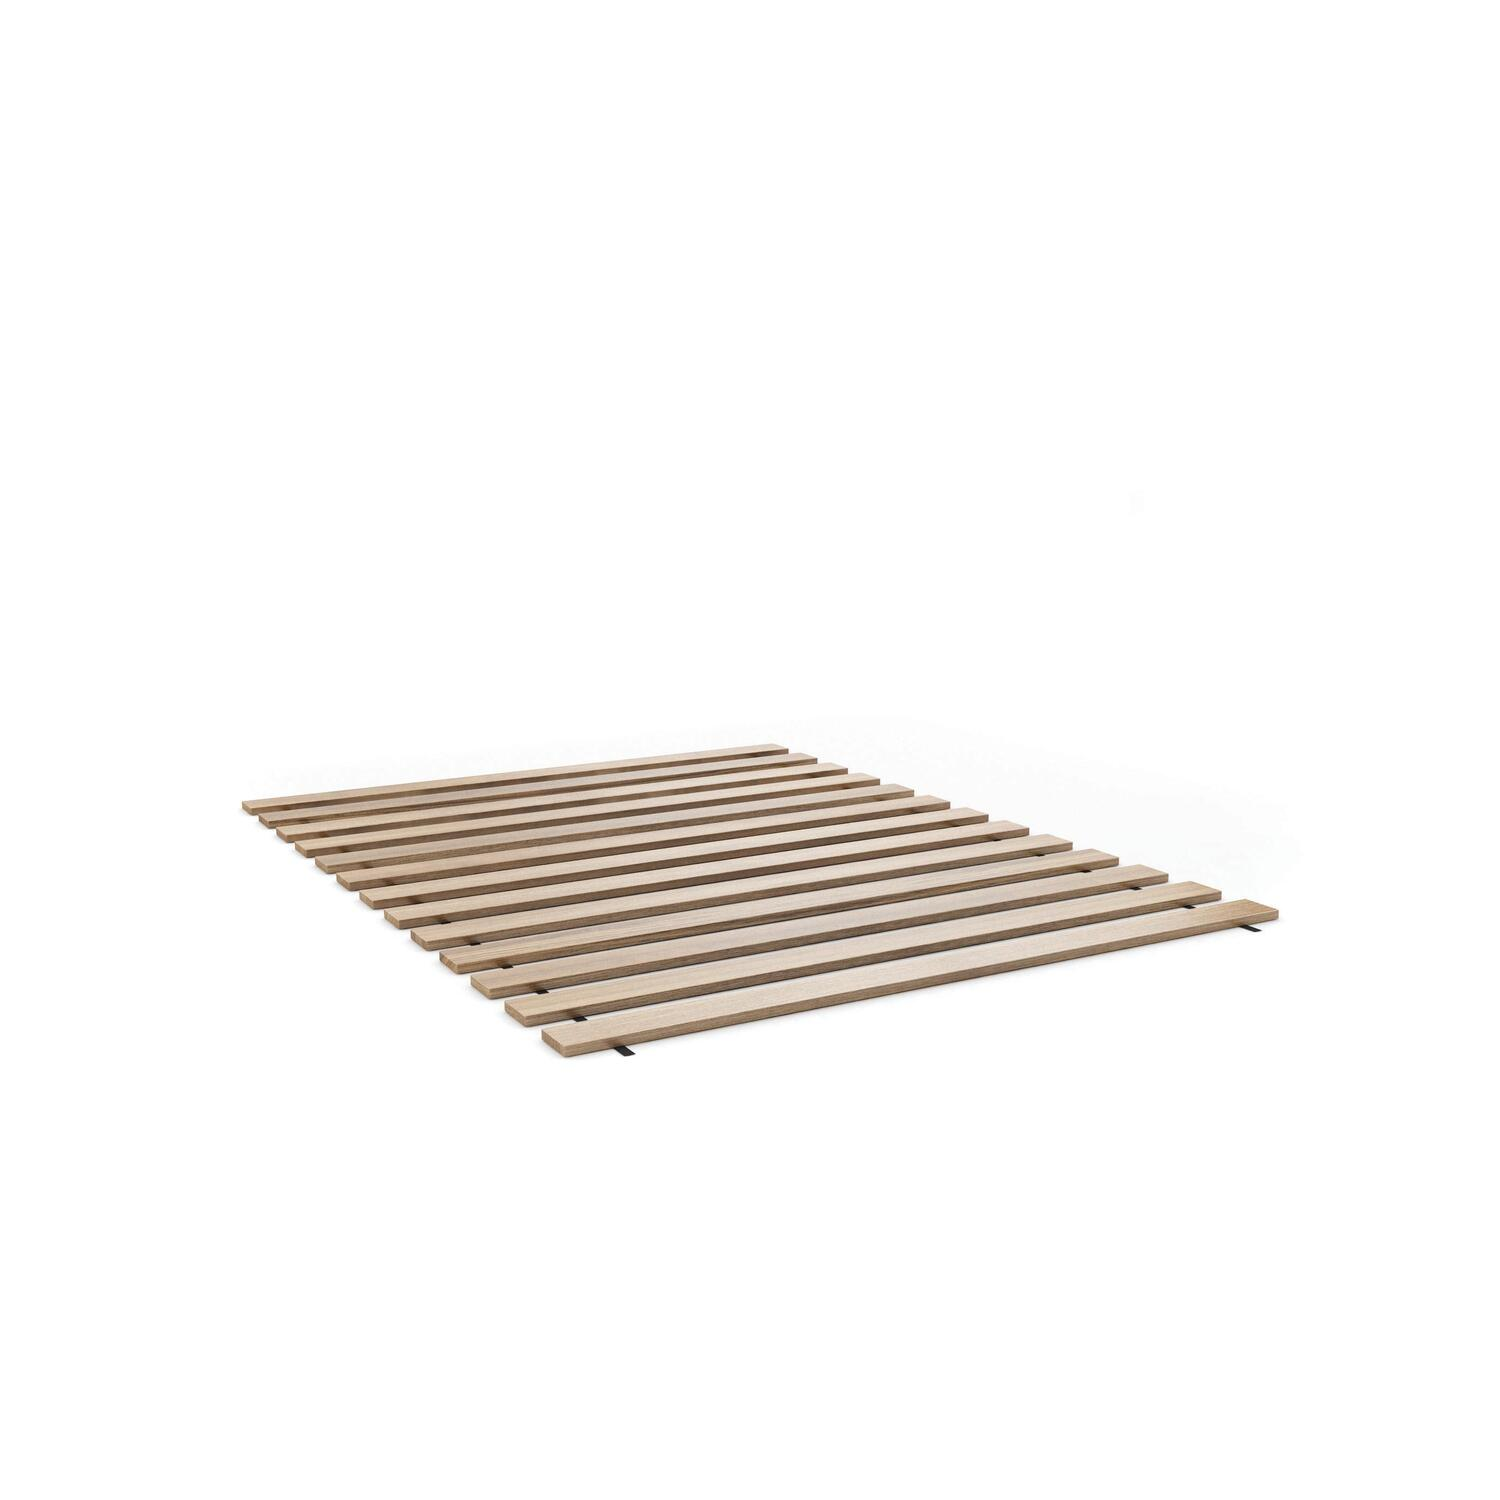 What Is The Length Of A Queen Size Bed Slat